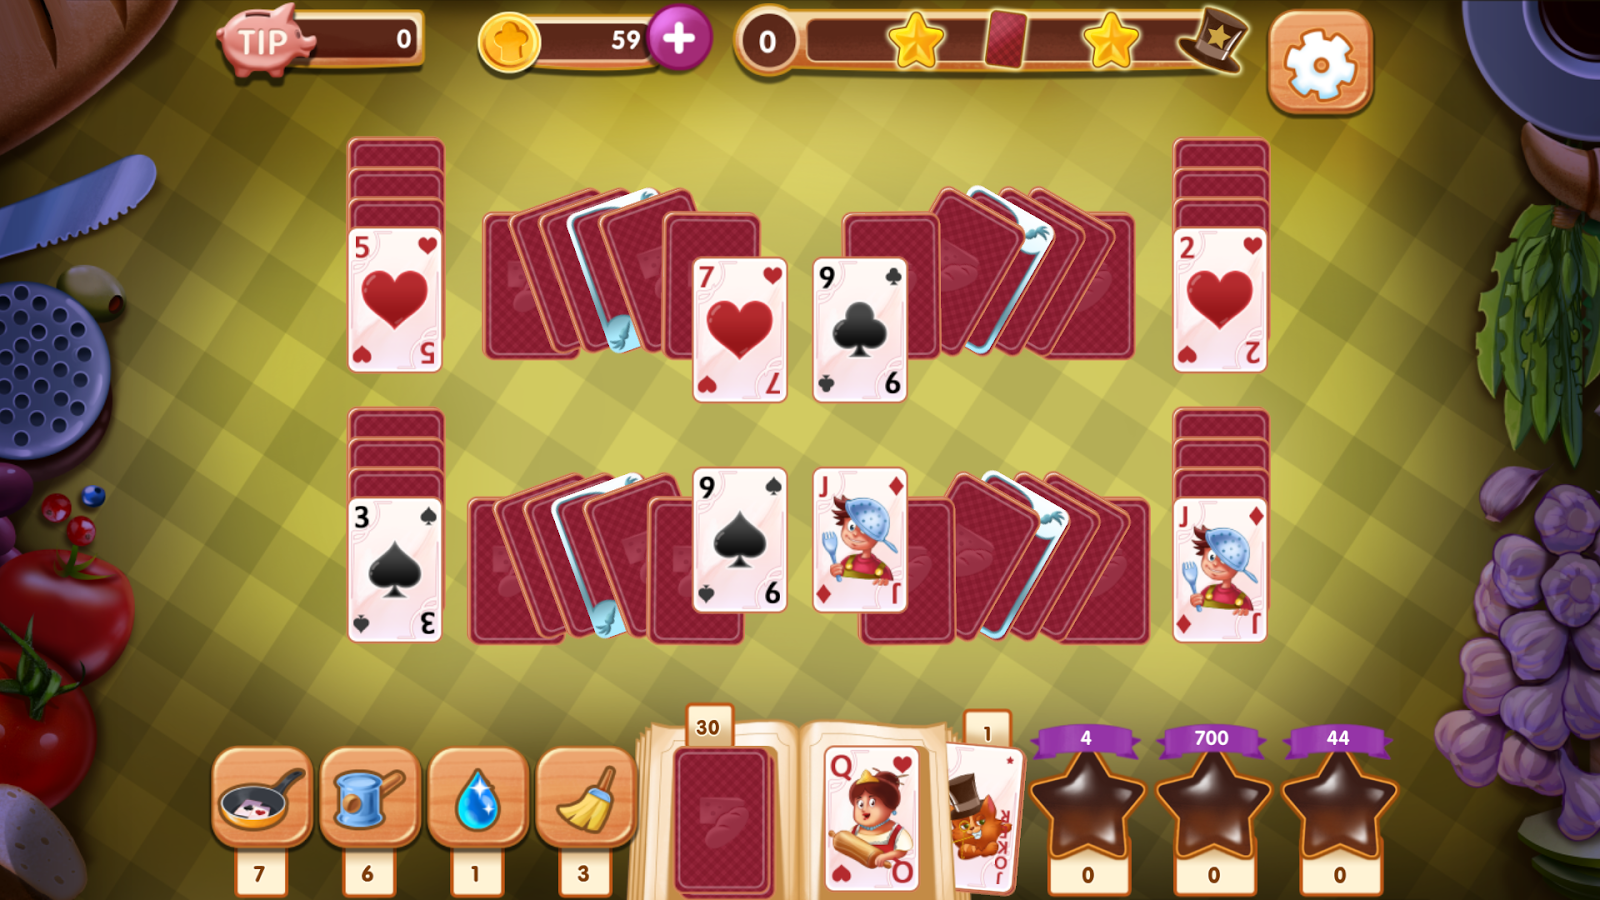 Tasty Solitaire Classic Screenshot 8